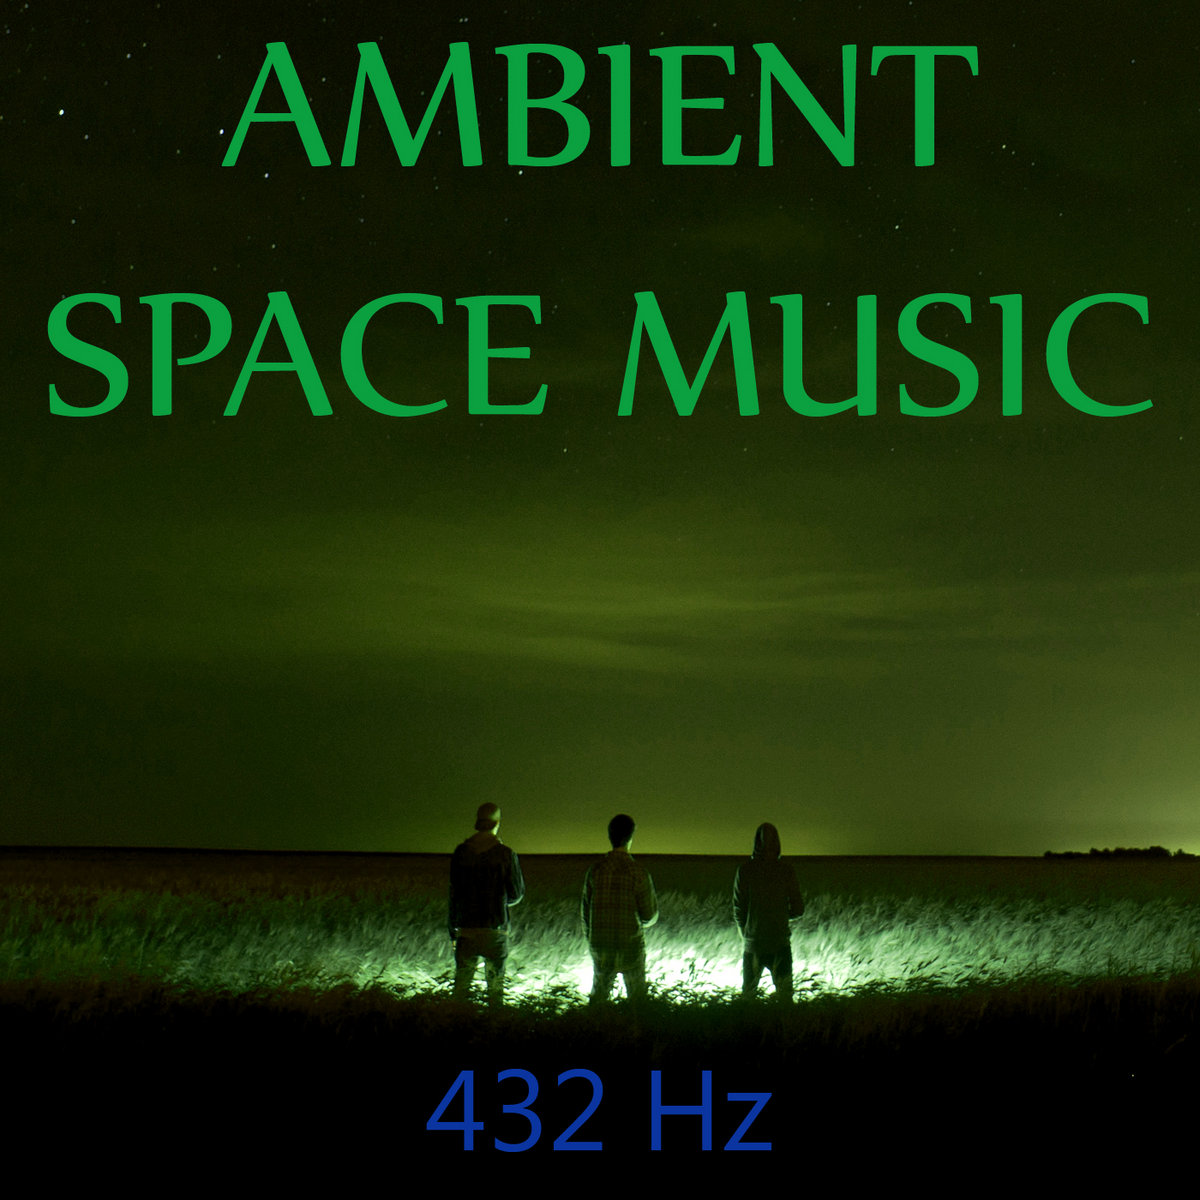 ambient music Christian ambient music by salt of the sound 90 minutes of stillness and peace 32 songs play on spotify 1 inhalesalt of the sound , antarctic wastelands • meditations, vol 3 1:270:30 2 nightfall embersnarrow skies • seasons: midnight horizons 1:070:30 3 refugesalt of the sound • in prayer 2:420:30 4.